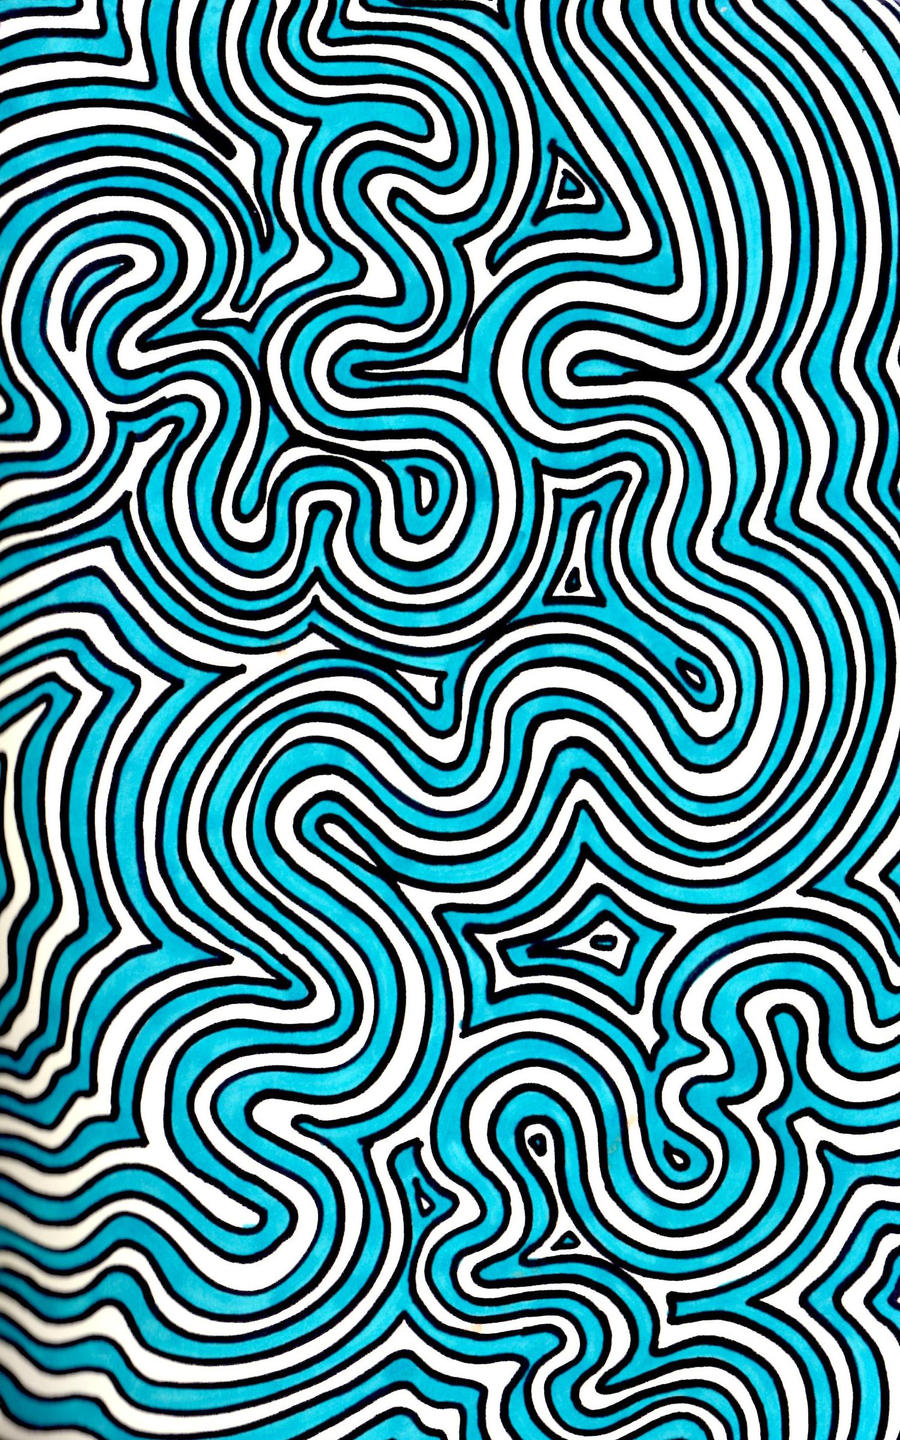 By Art Lines : Squiggly lines by loveheals on deviantart